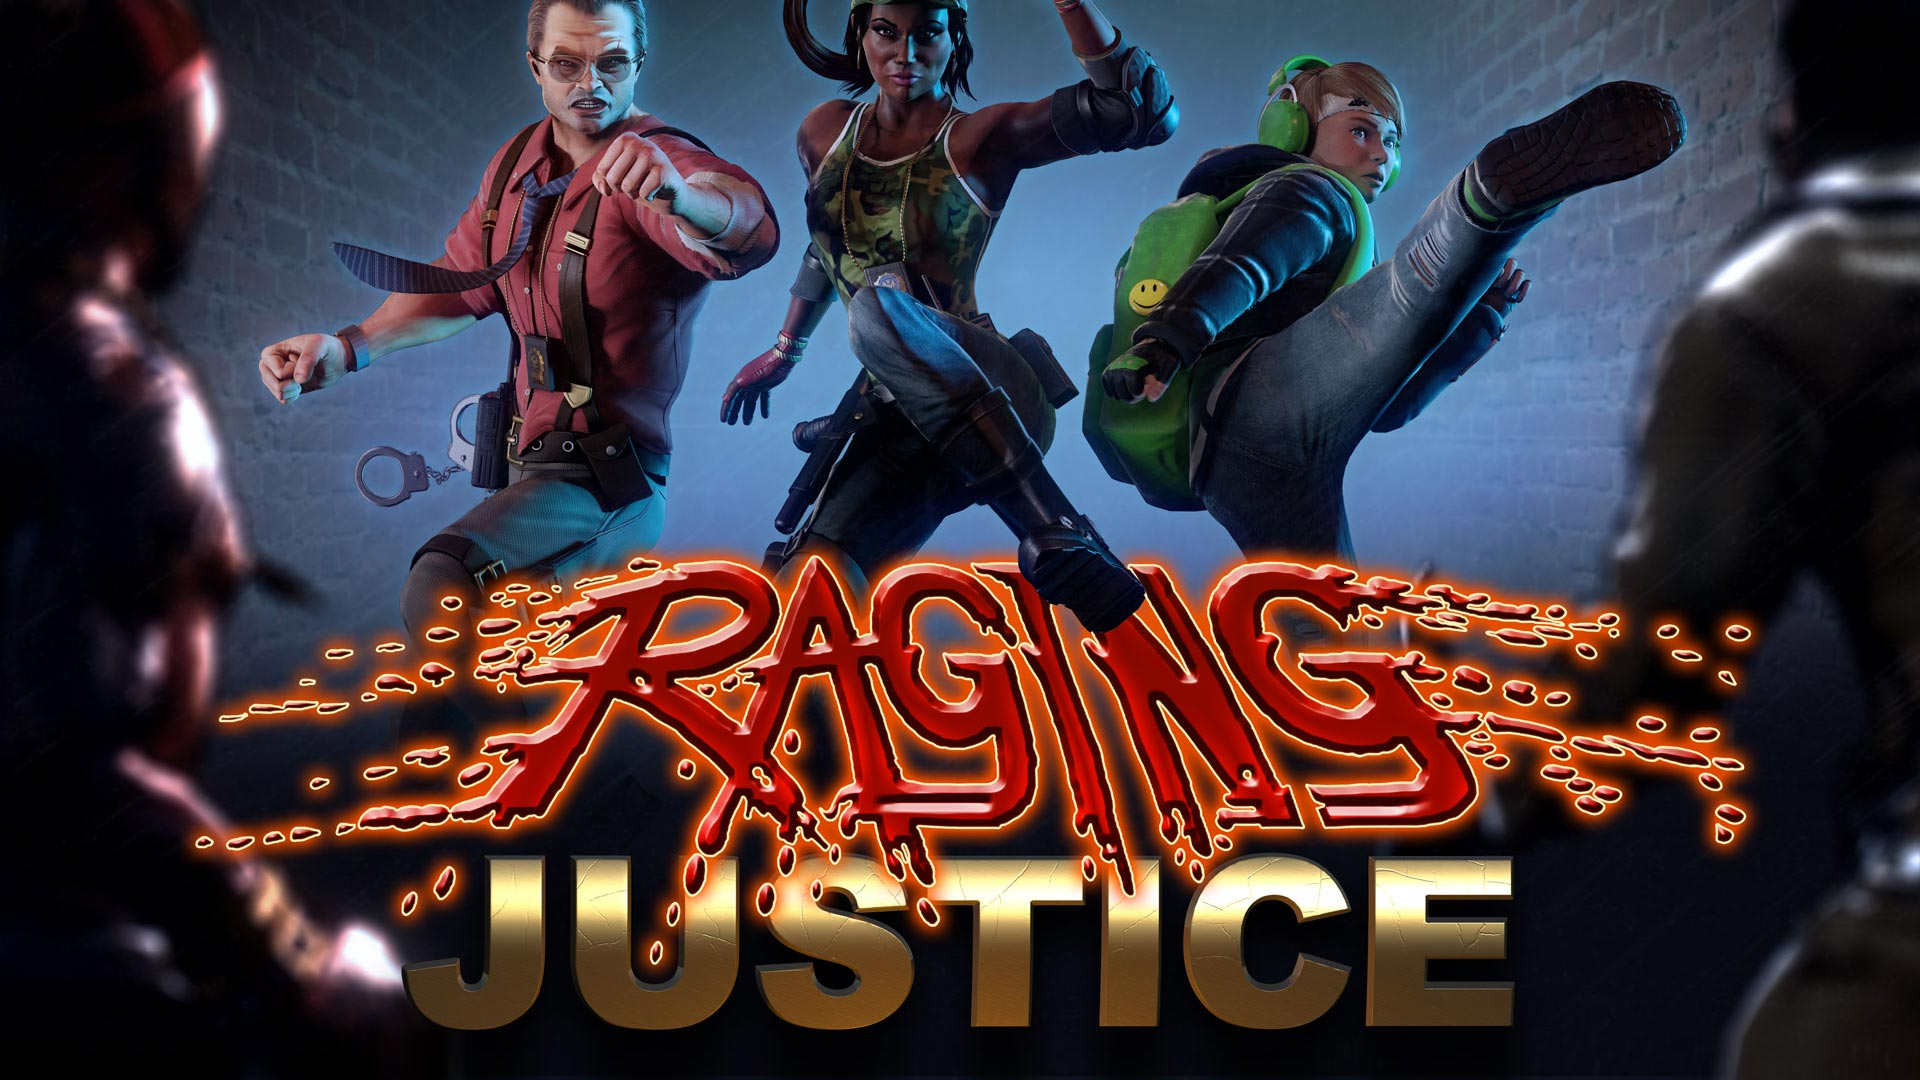 RAGING JUSTICE – A New Character Approaches!